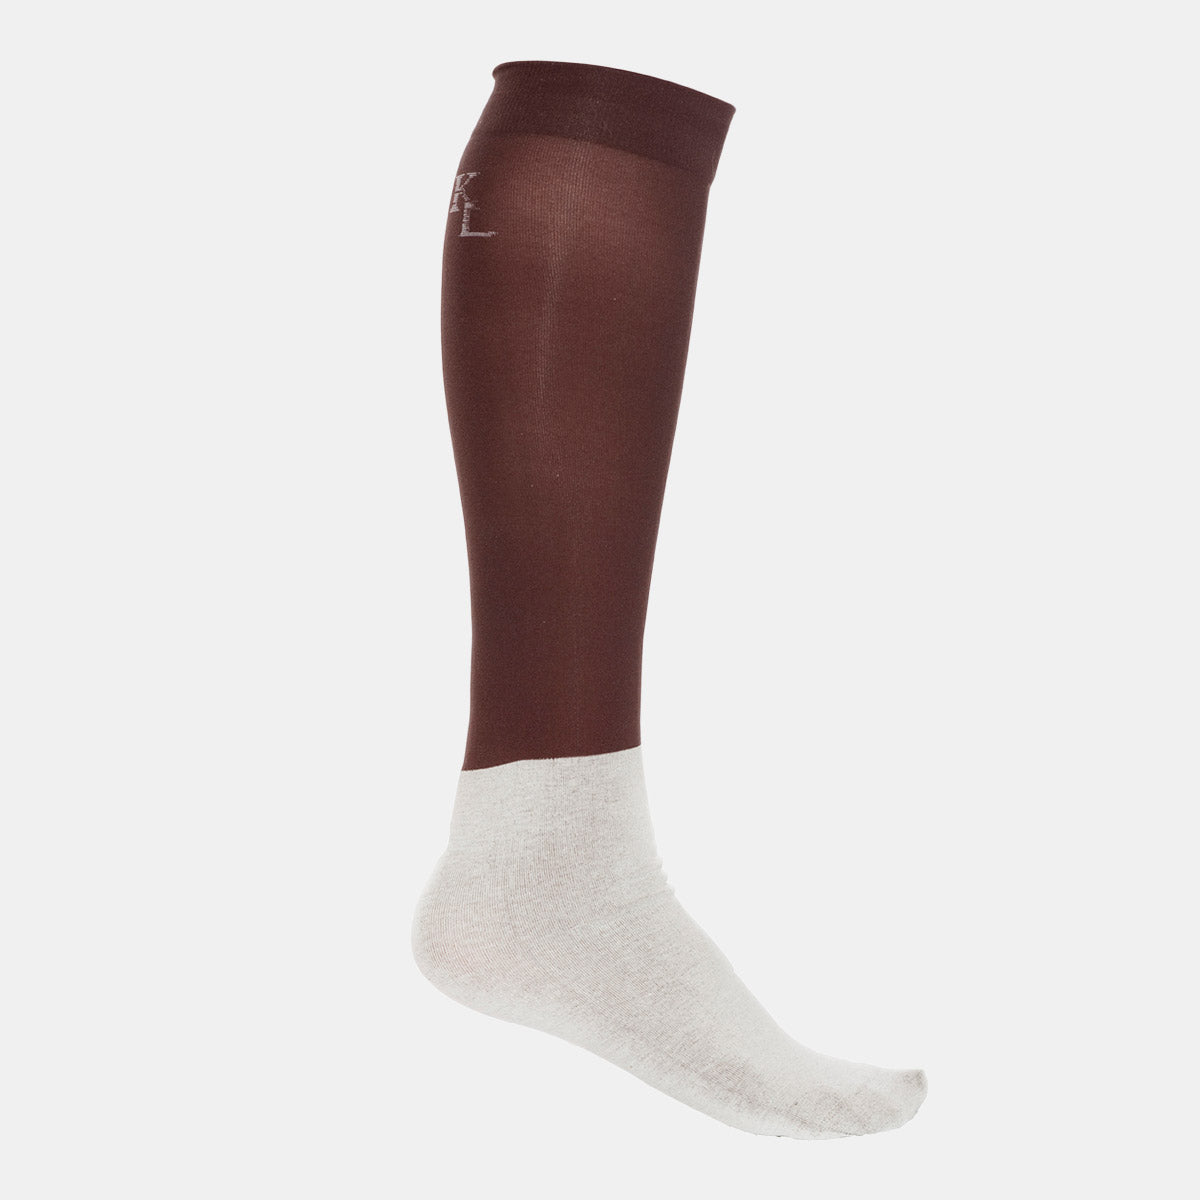 Kingsland Classic Show Socks in Brown